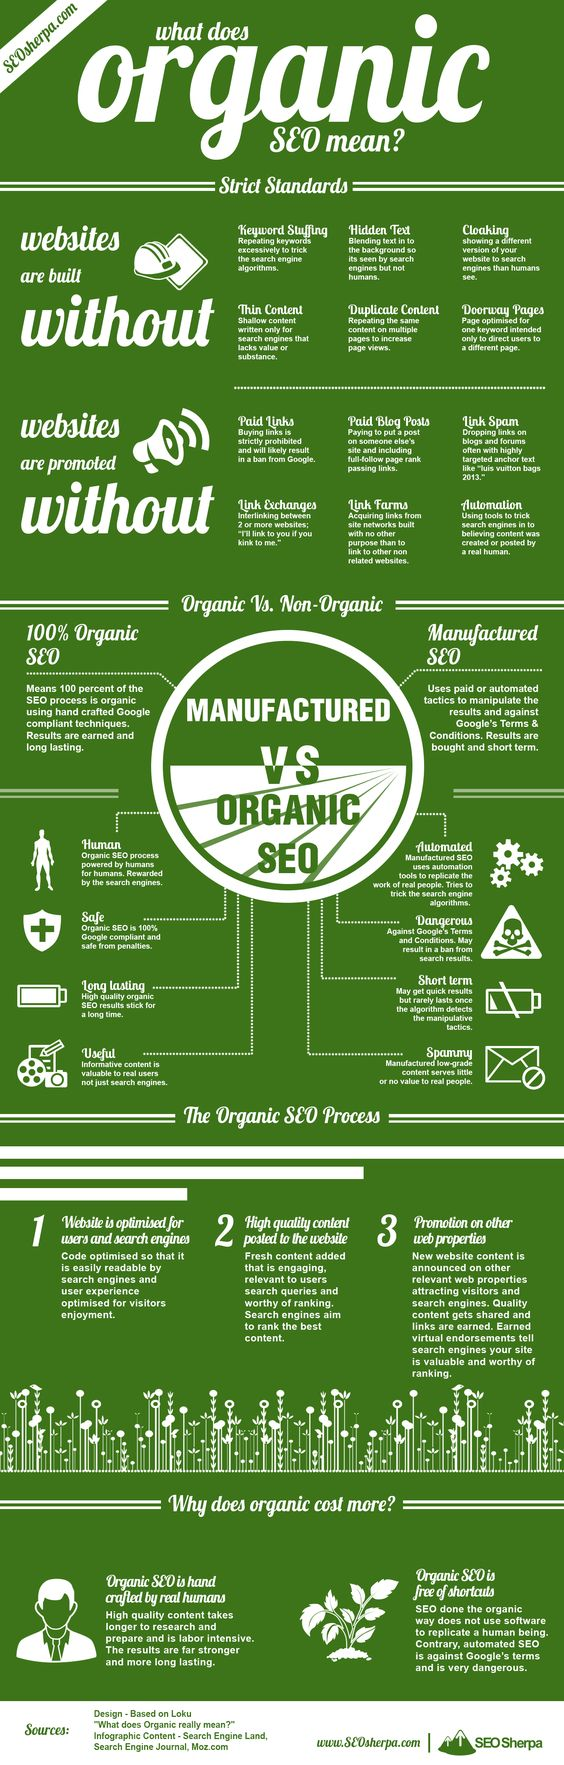 Infographic Image for Organic SEO